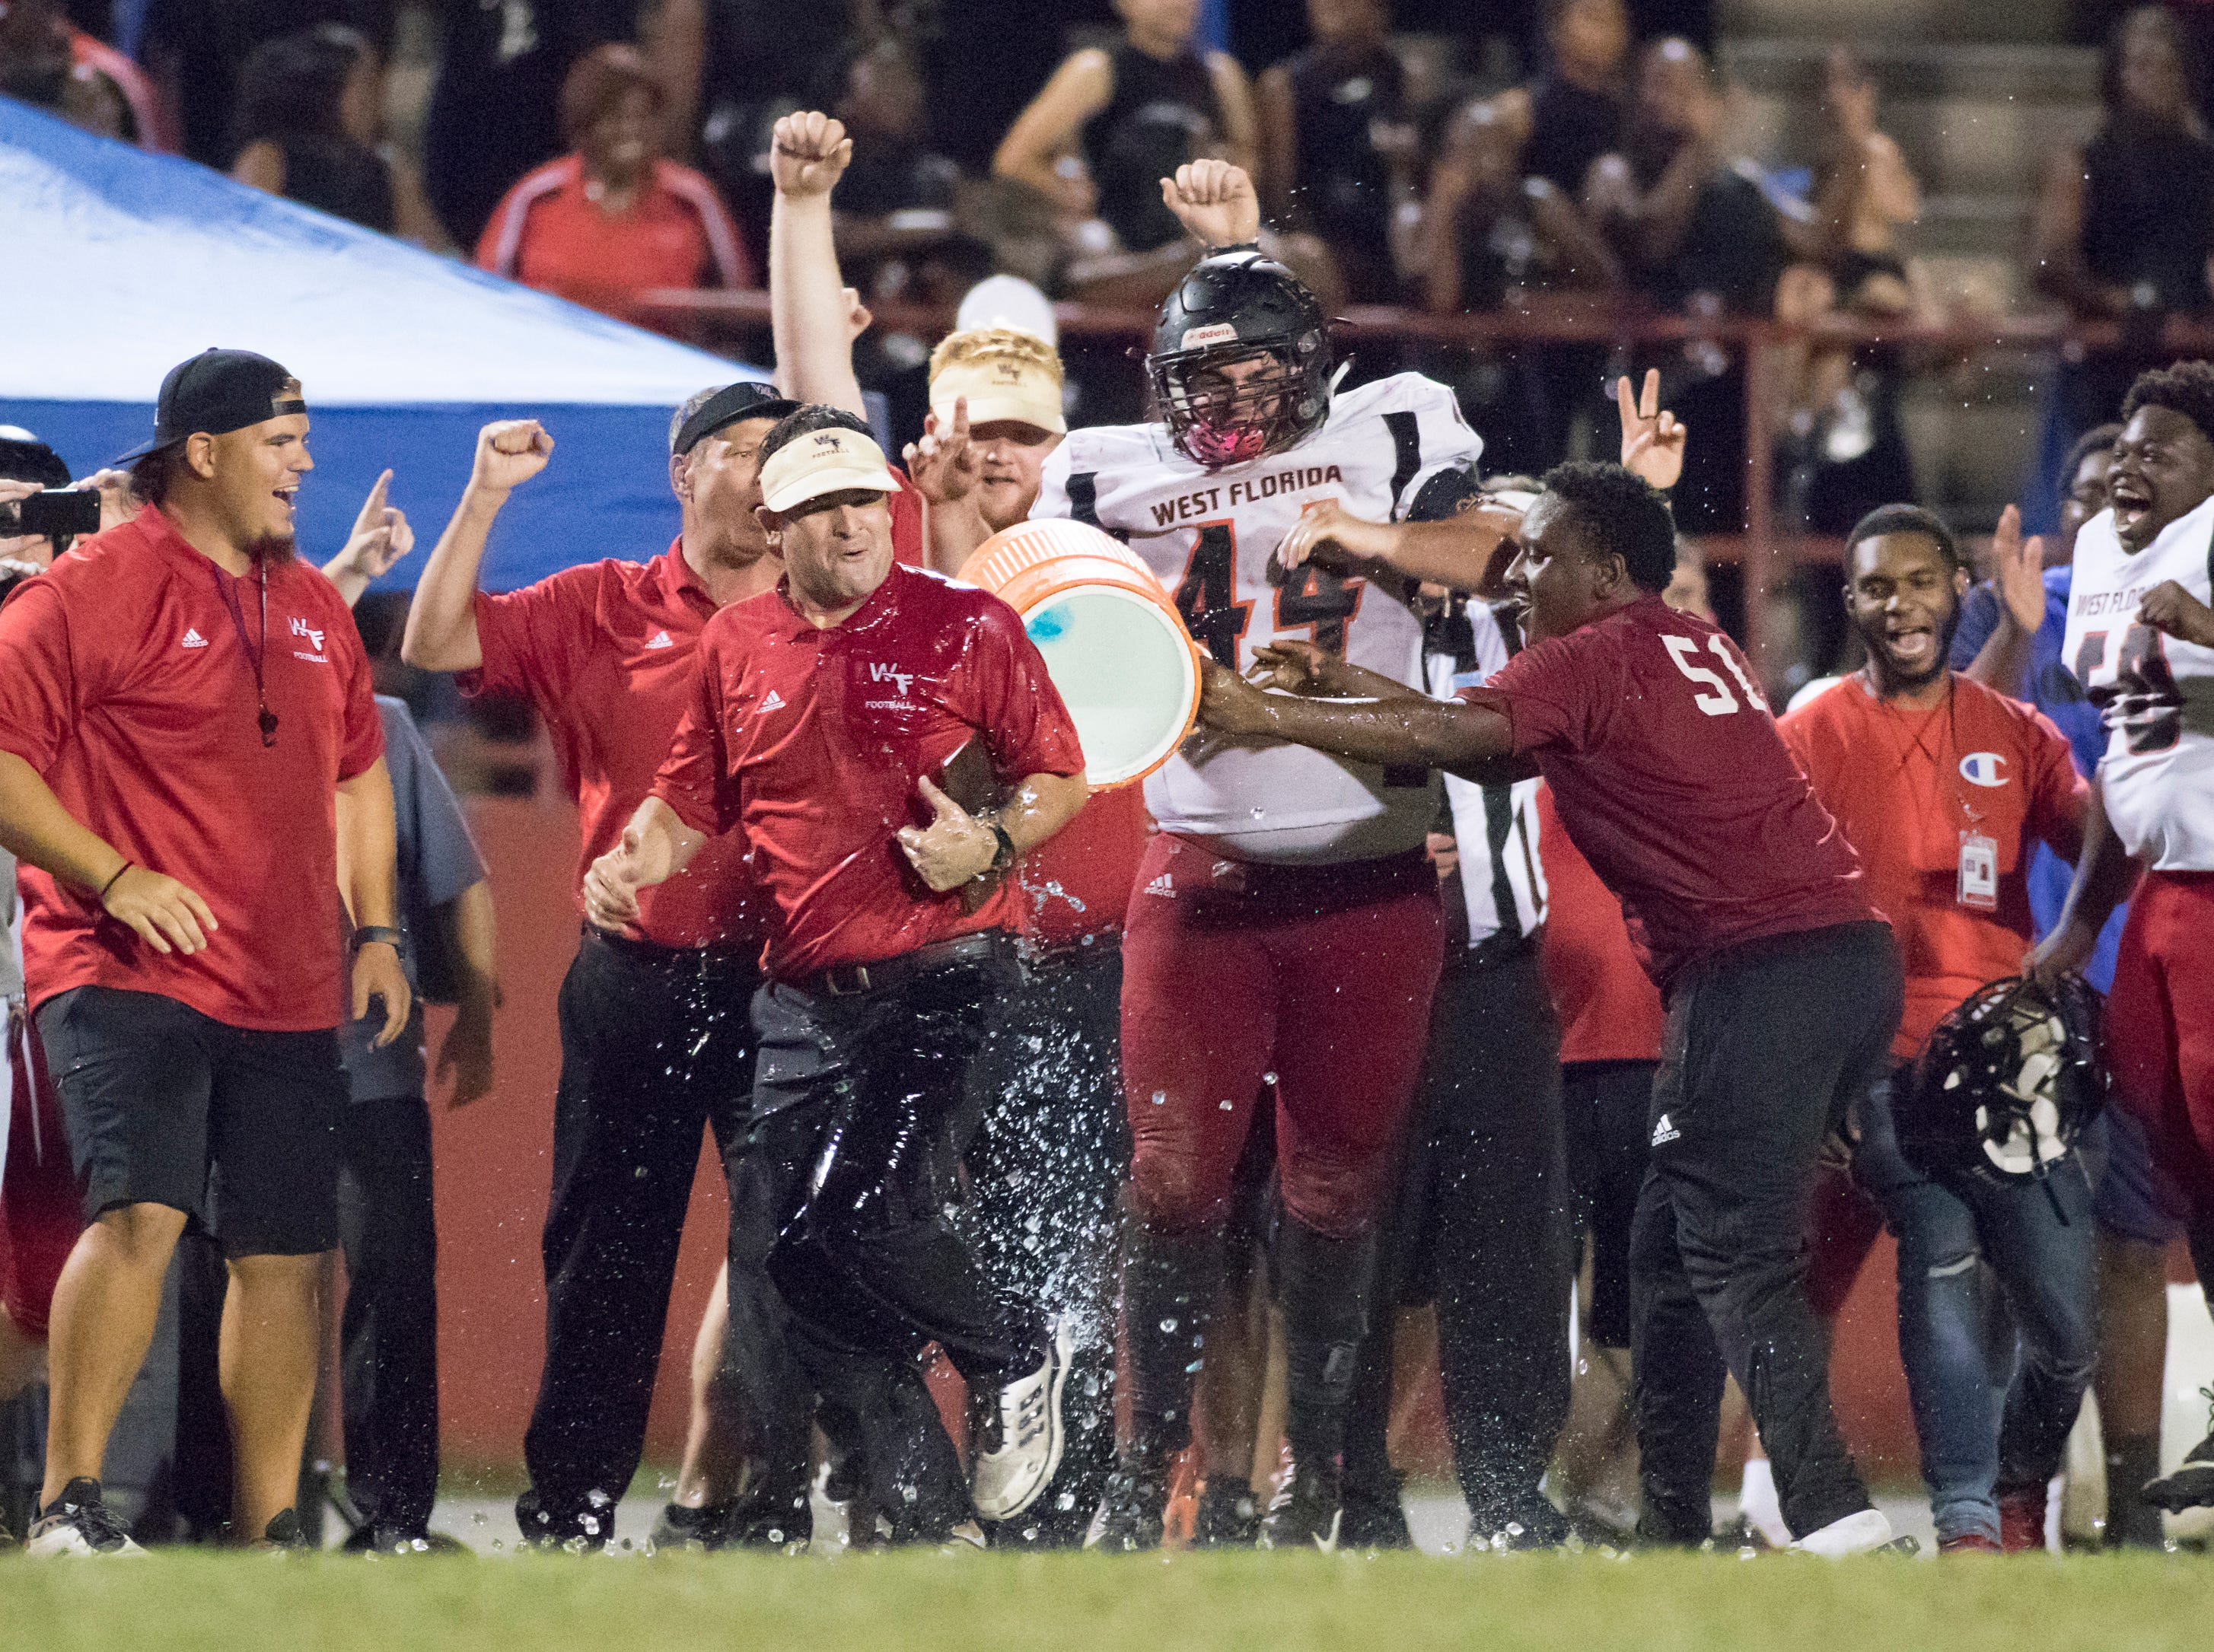 Jaguars head coach Rhett Summerford gets a Gatorade bath after a thrilling 27-24 win during the West Florida vs Pine Forest football game at Pine Forest High School in Pensacola on Friday, October 5, 2018.